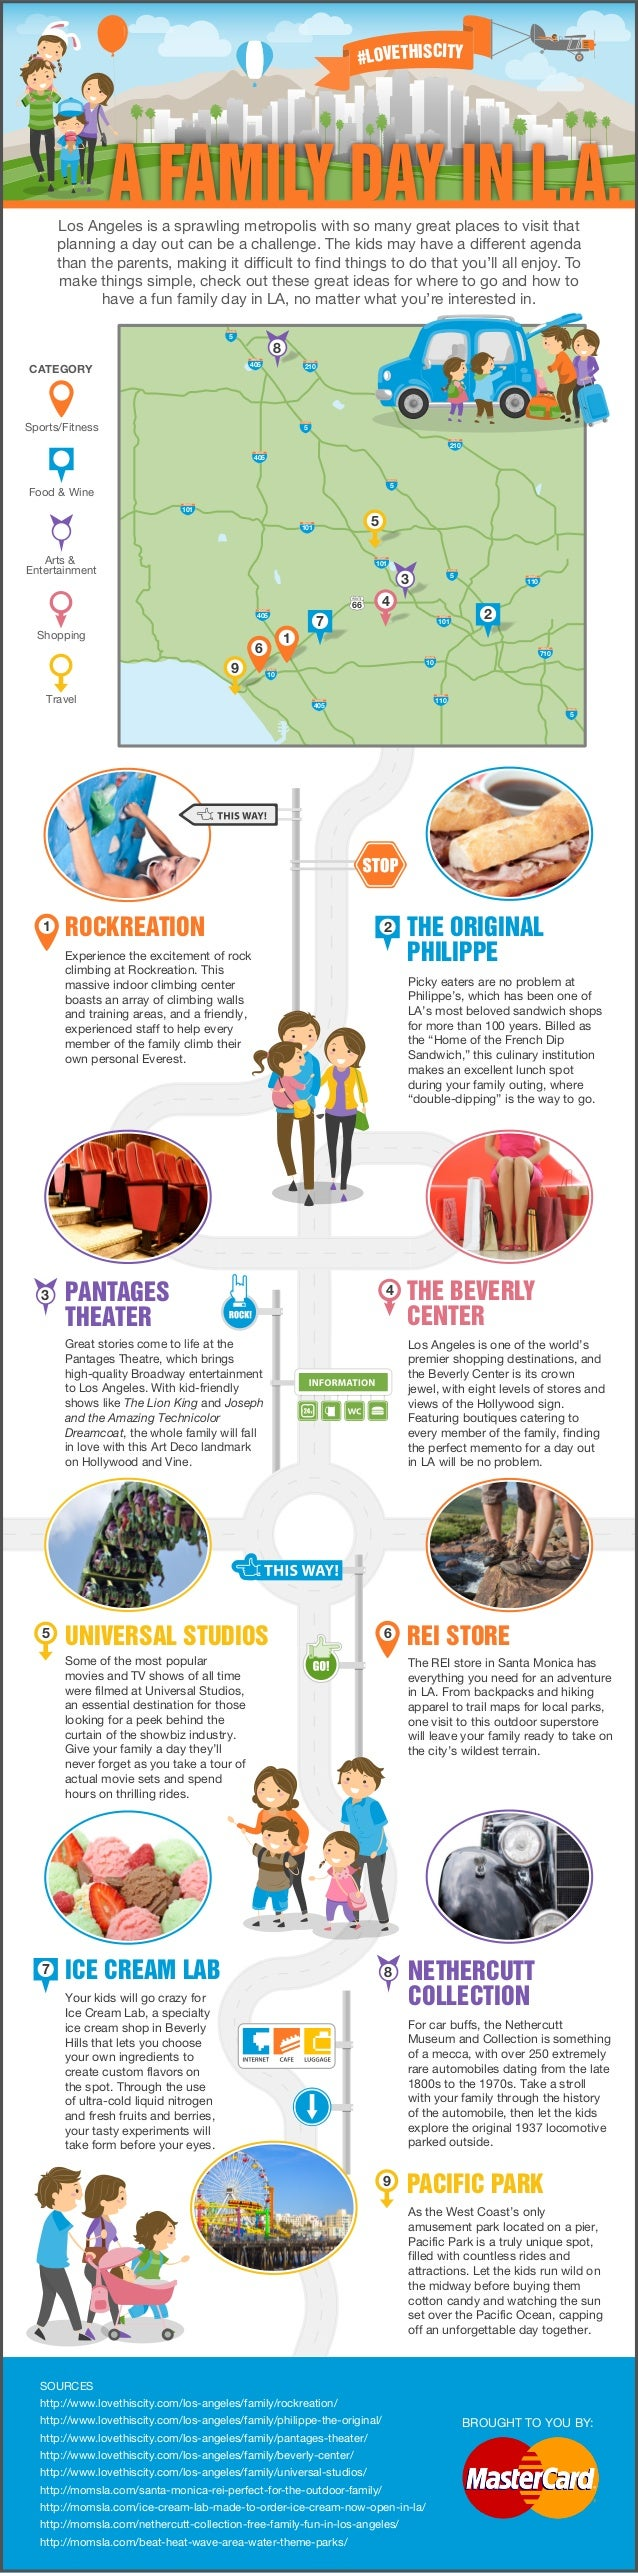 A Family Day in Los Angeles - INFOGRAPHIC